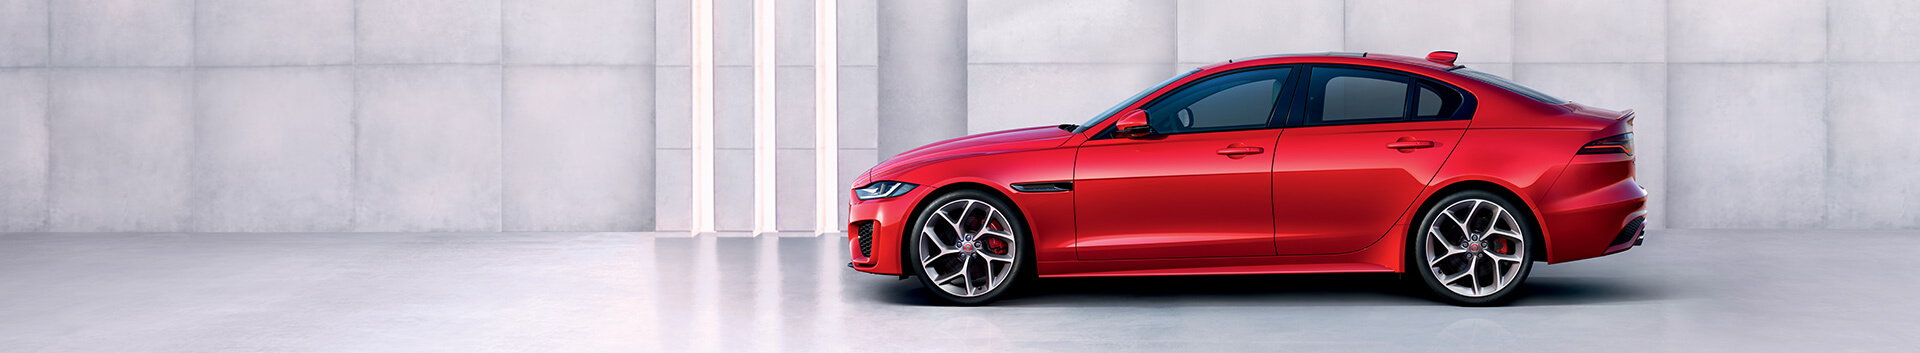 Jaguar Richmond, Why Certified Pre-Owned